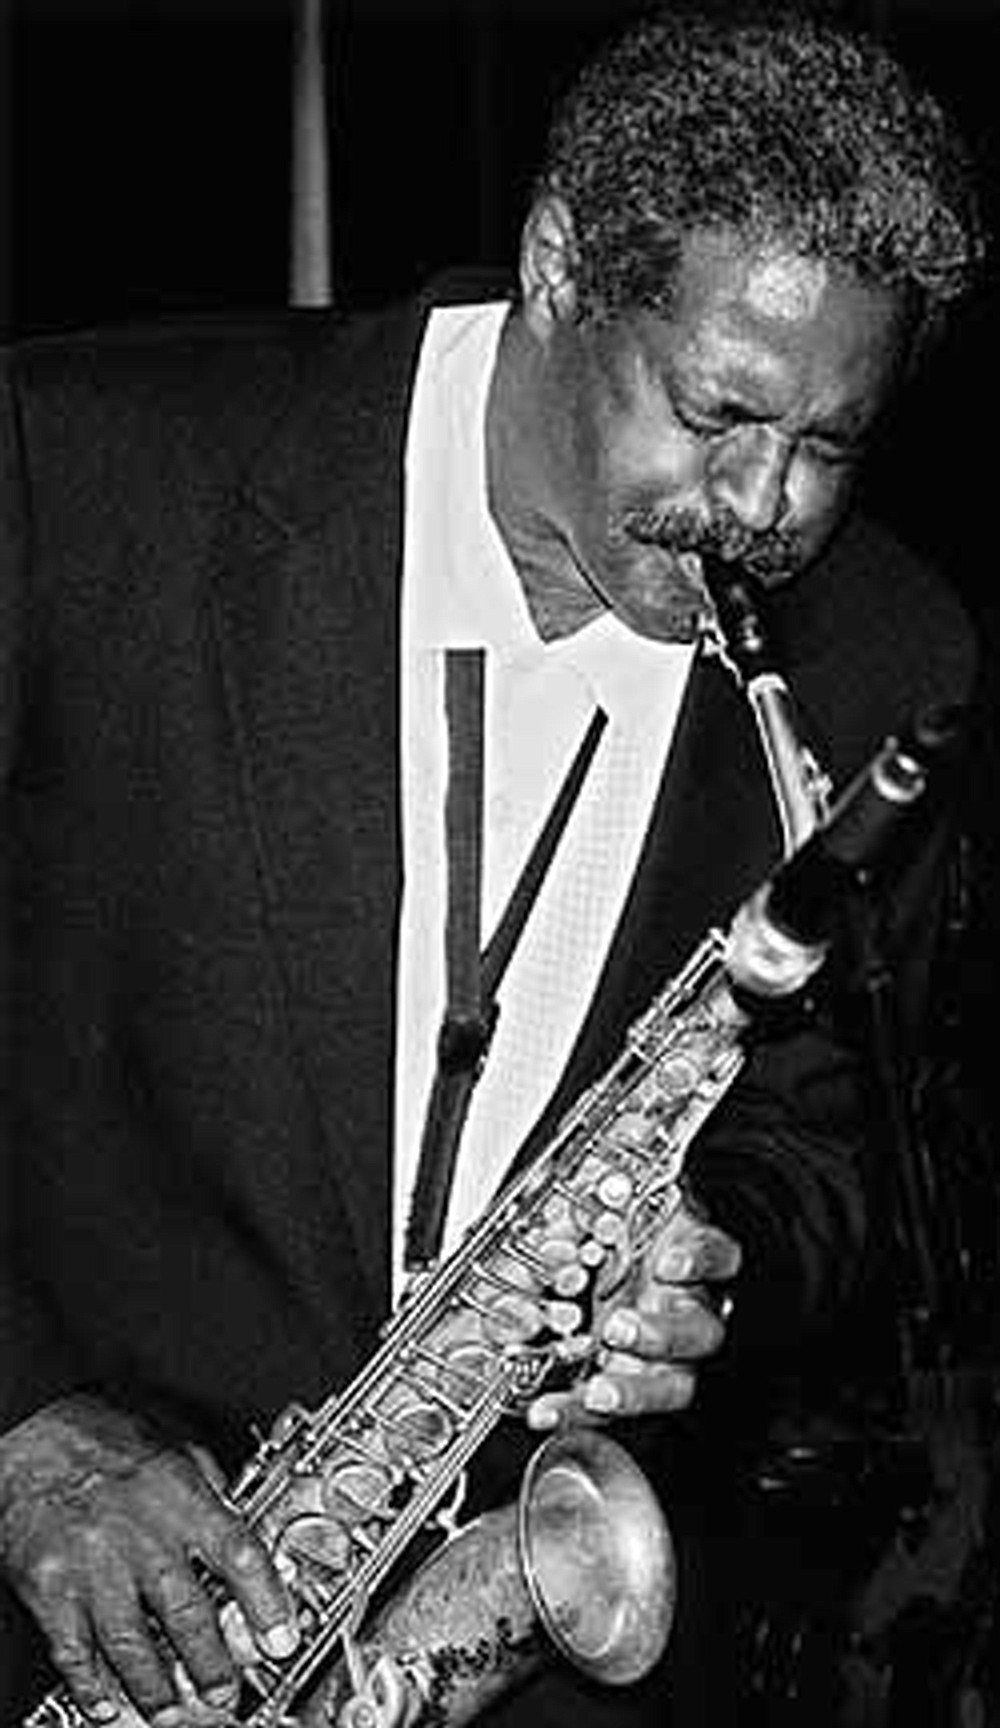 Charles McPherson. He played with Mingus throughout the '60s and went on to record and tour with Billy Eckstein, Lionel Hampton, Art Farmer, and Wynton Marsalis.